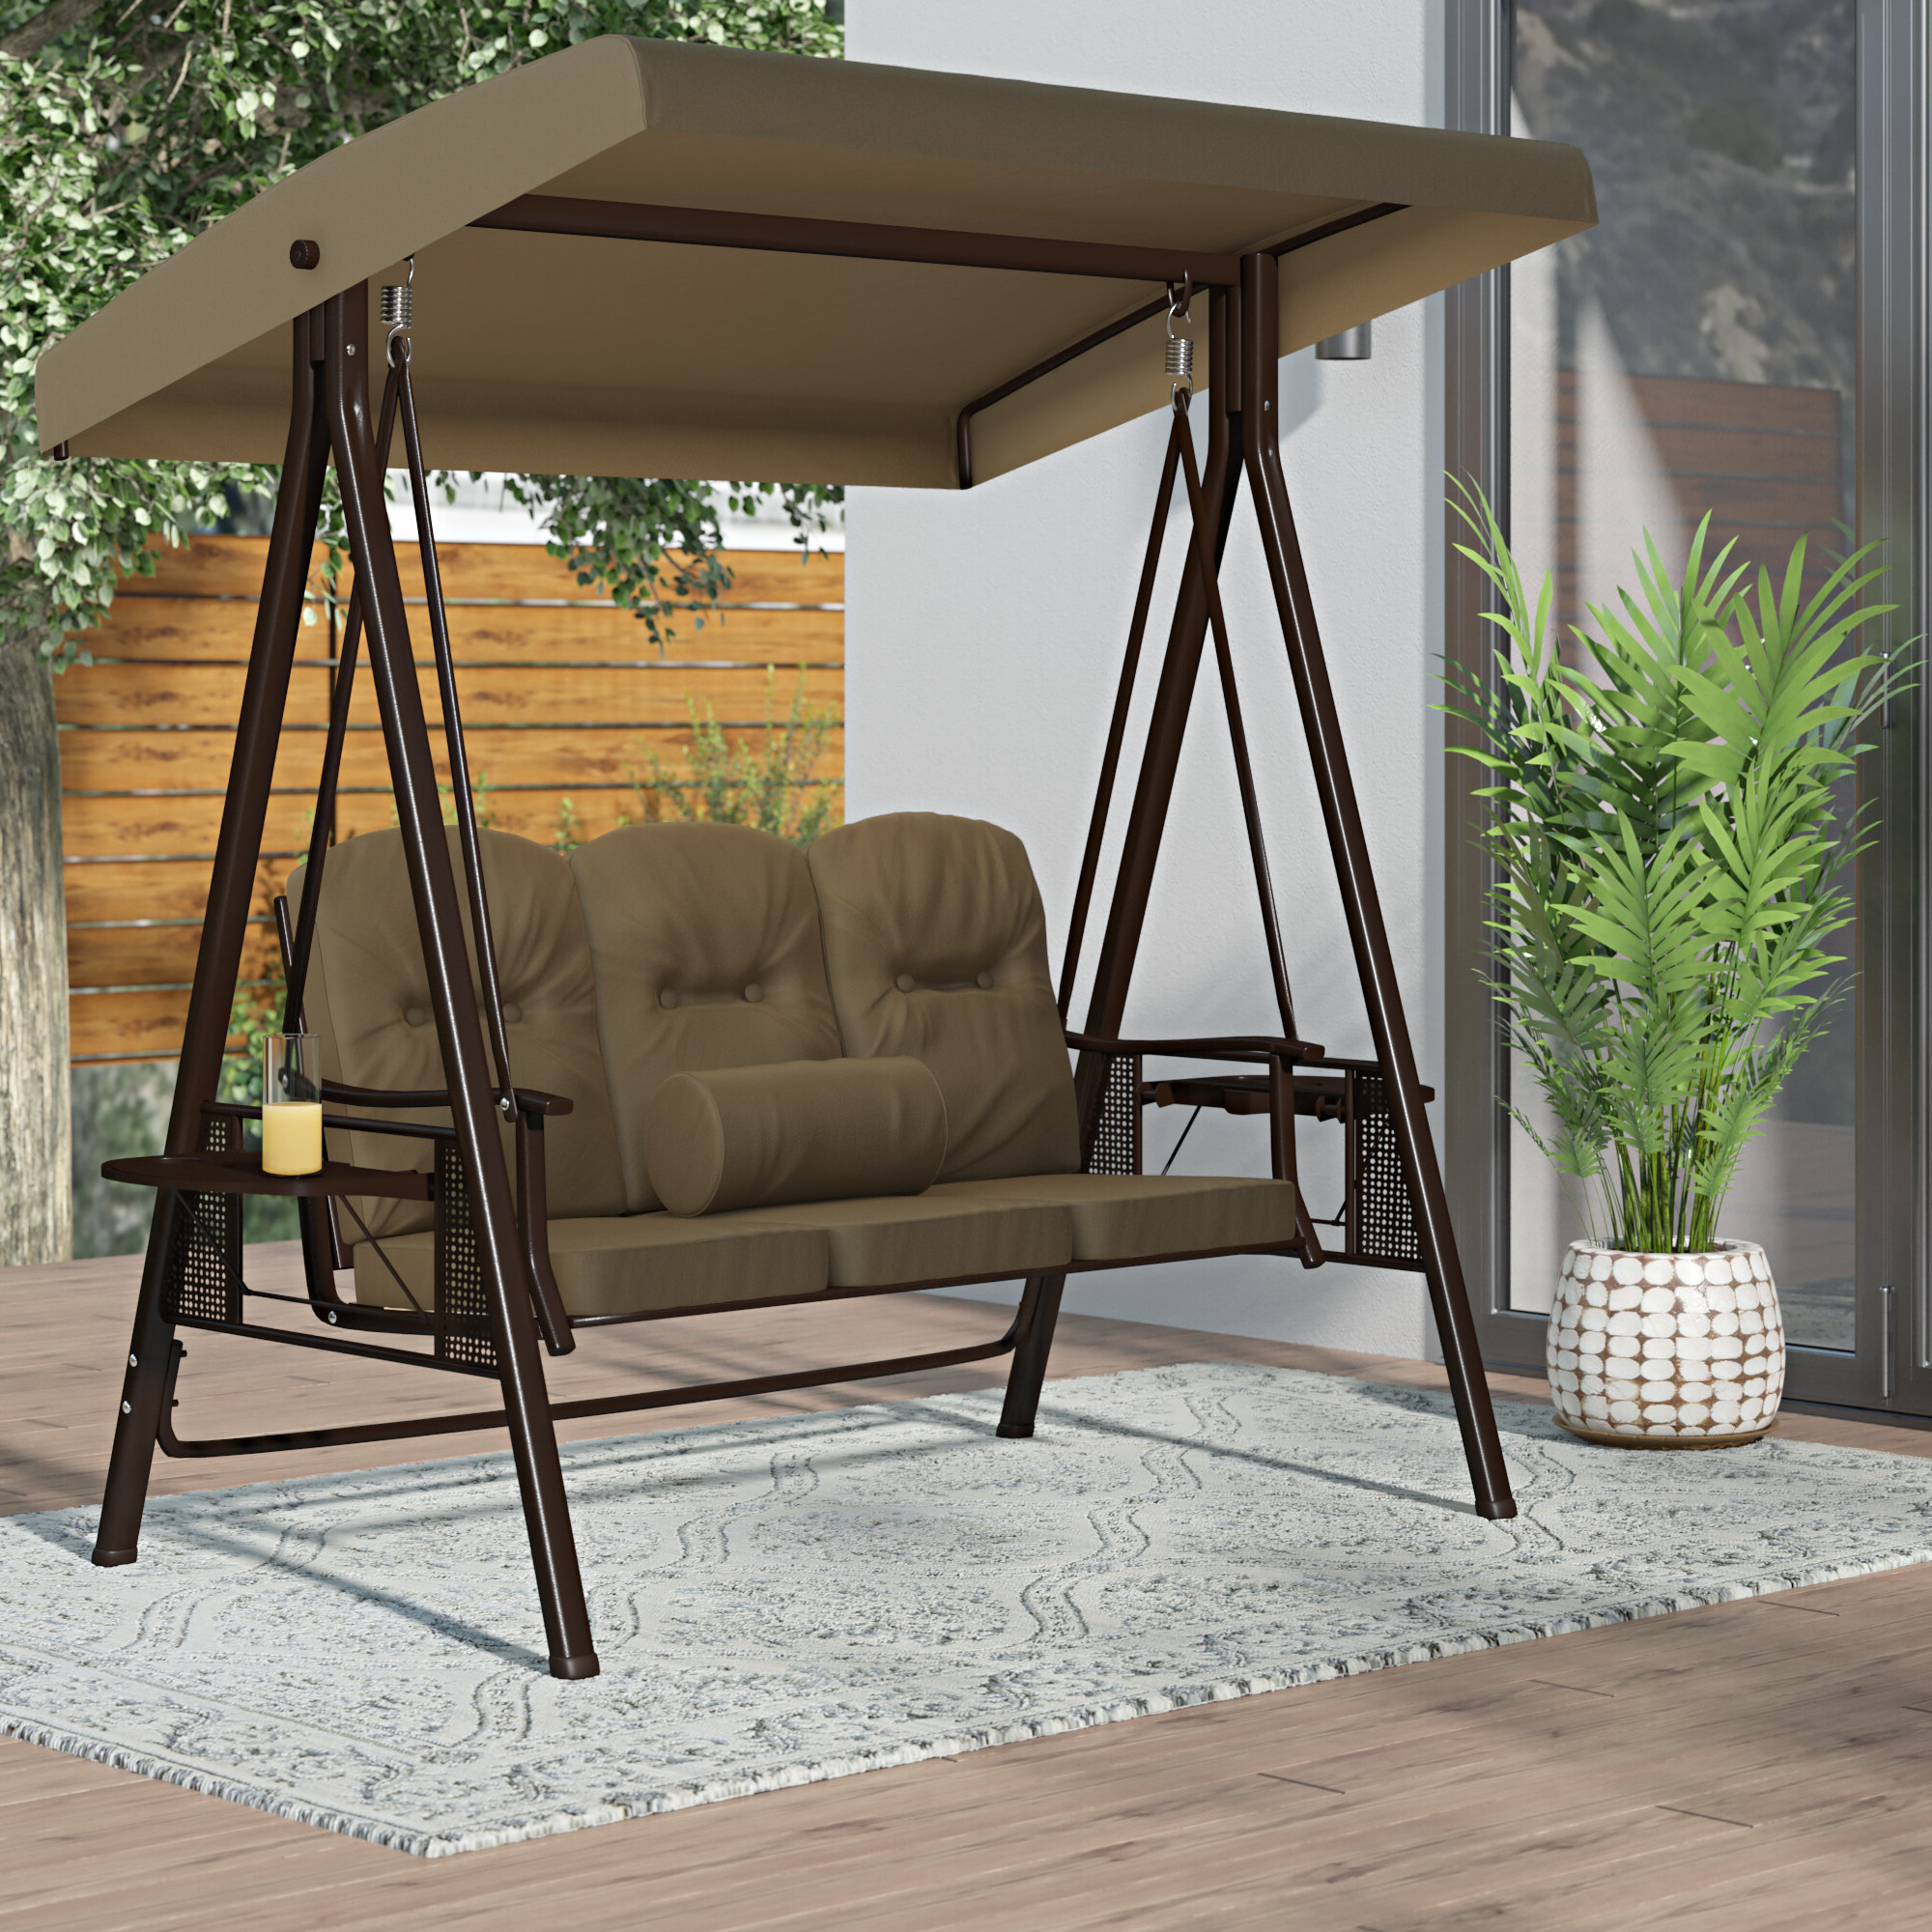 Well Known Canopy Patio Porch Swing With Stand Intended For Folkston Outdoor Canopy Porch Swing With Stand (View 9 of 30)